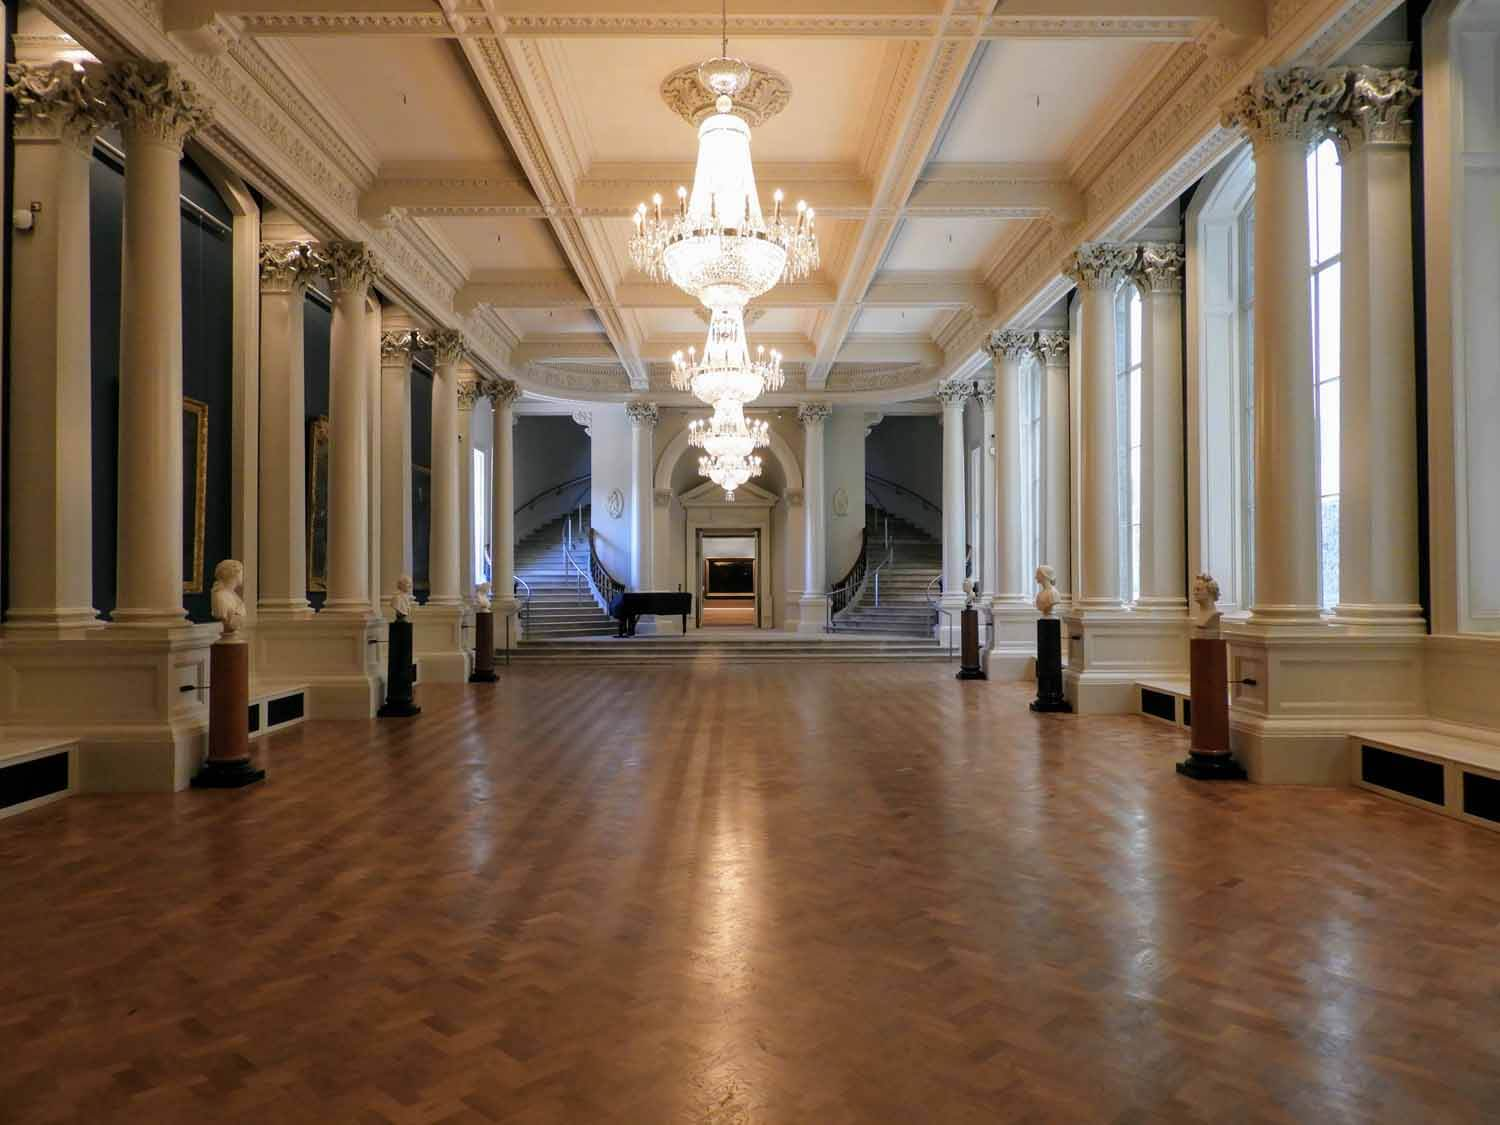 ireland-dublin-national-gallery-ballroom.jpg